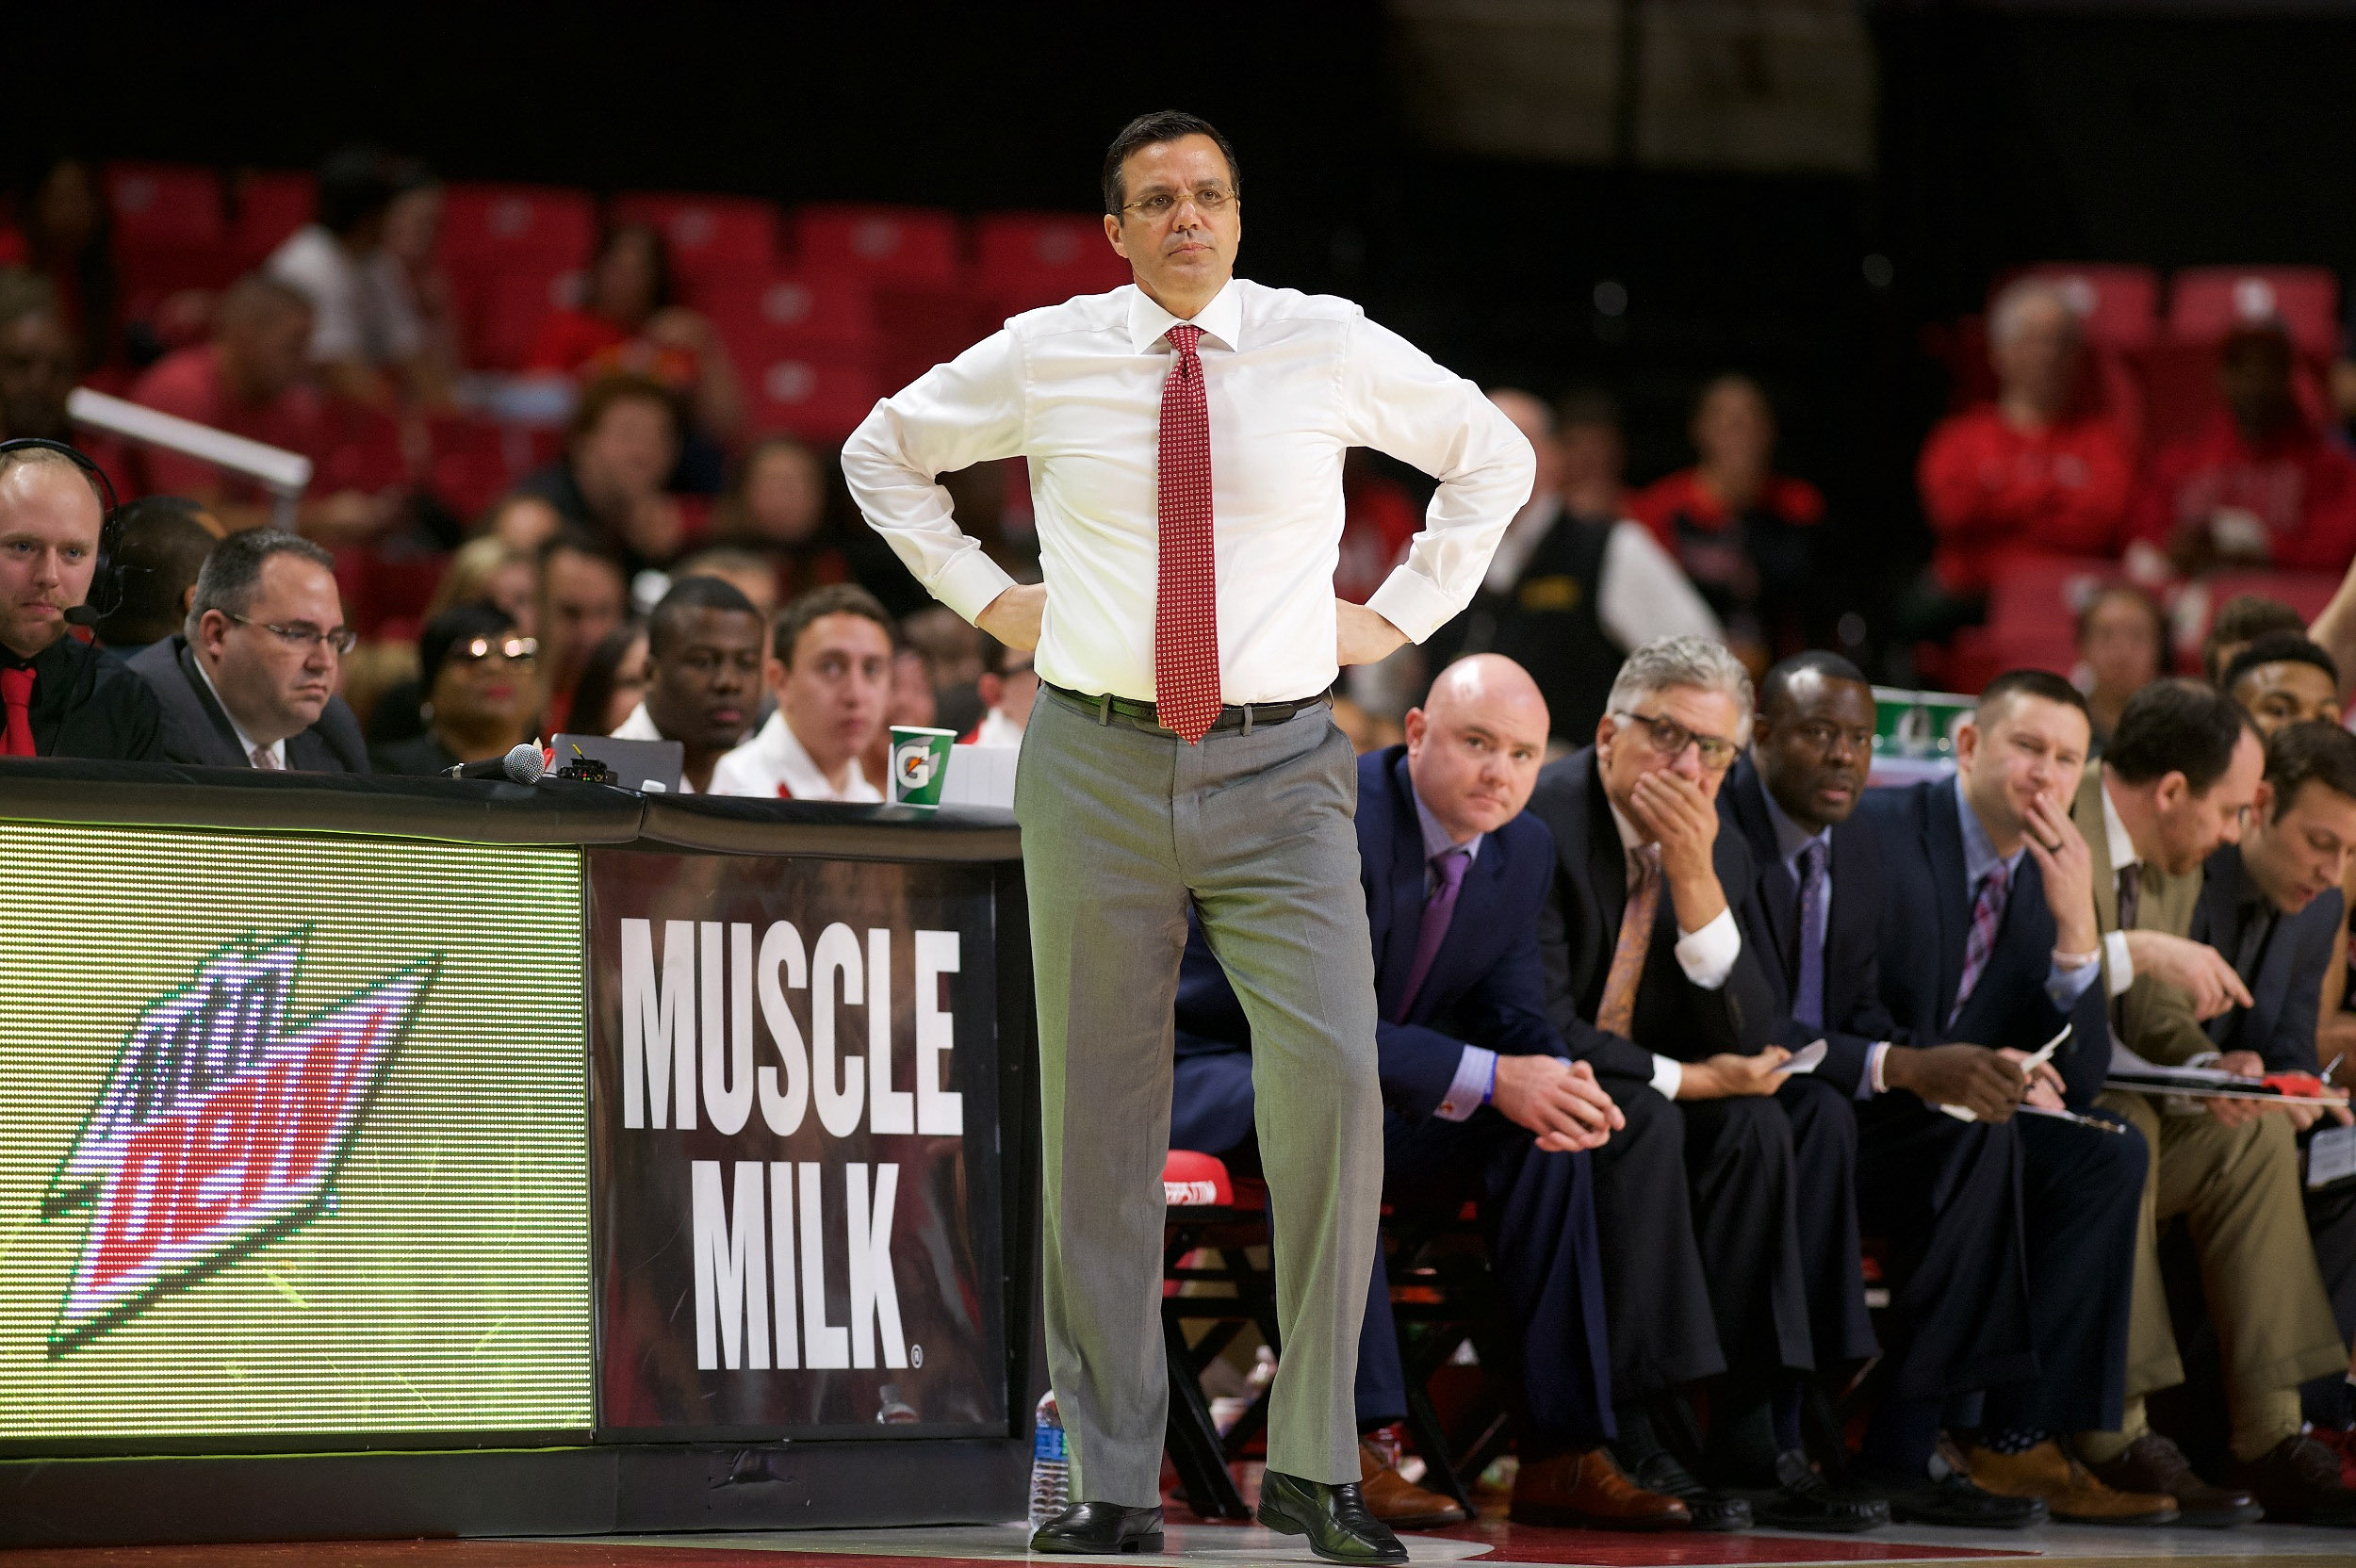 9781131-ncaa-basketball-nebraska-at-maryland